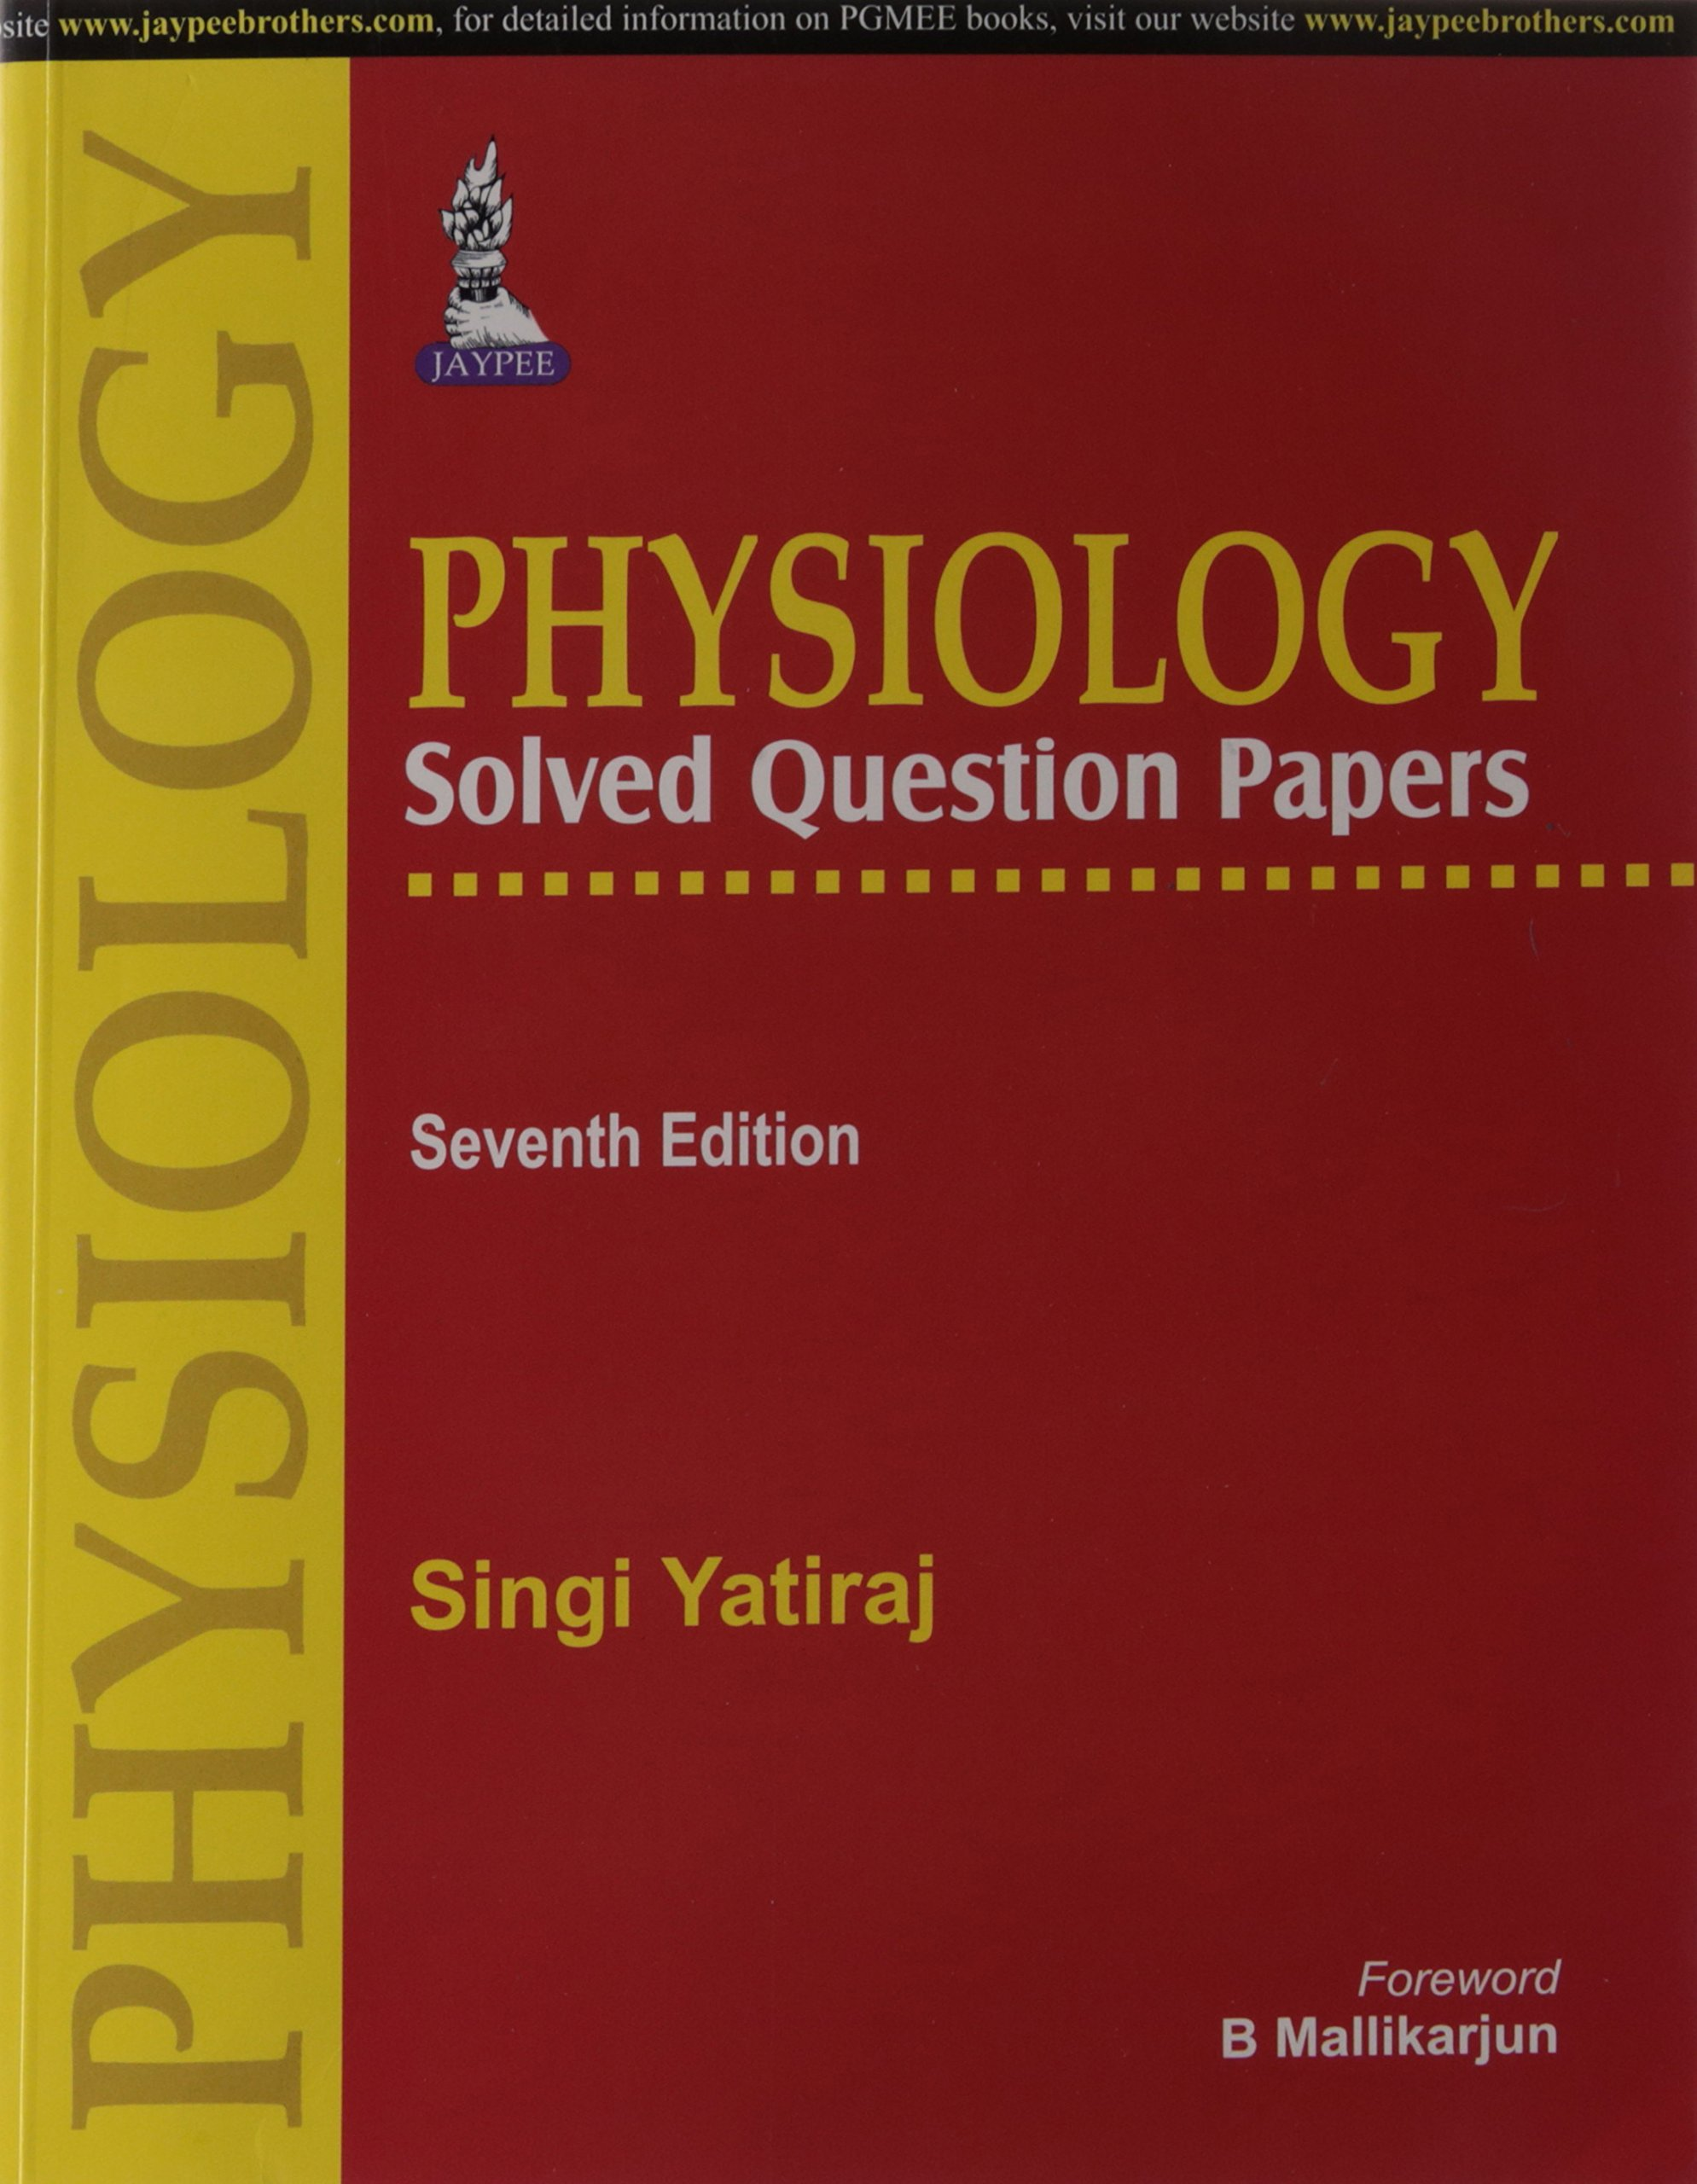 buy physiology solved question papers book online at low prices in